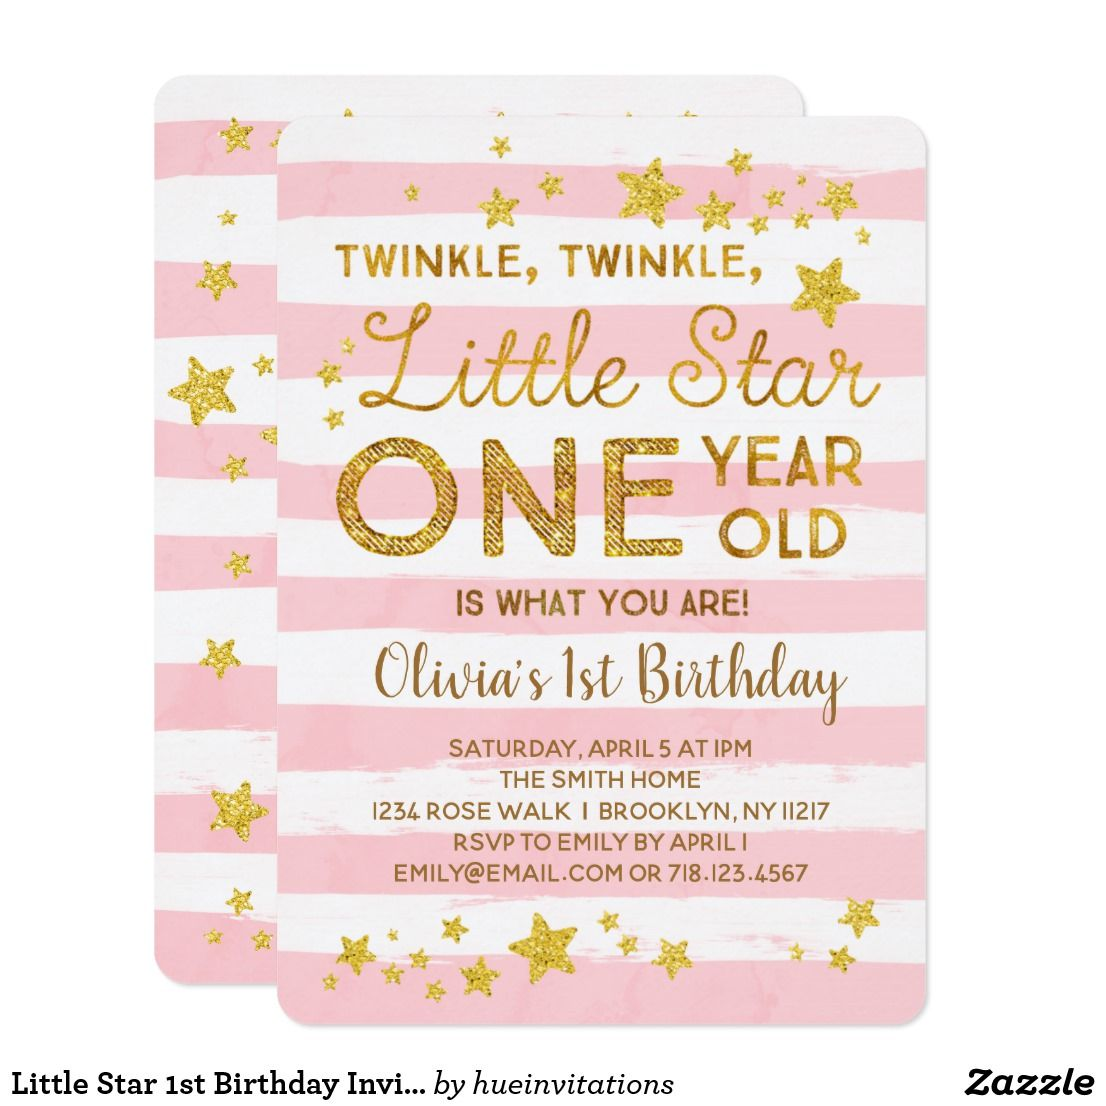 Little star 1st birthday invitation pink gold little star 1st birthday invitation pink gold twinkle twinkle little star one year old is what you are twinkle twinkle little star 1st birthday filmwisefo